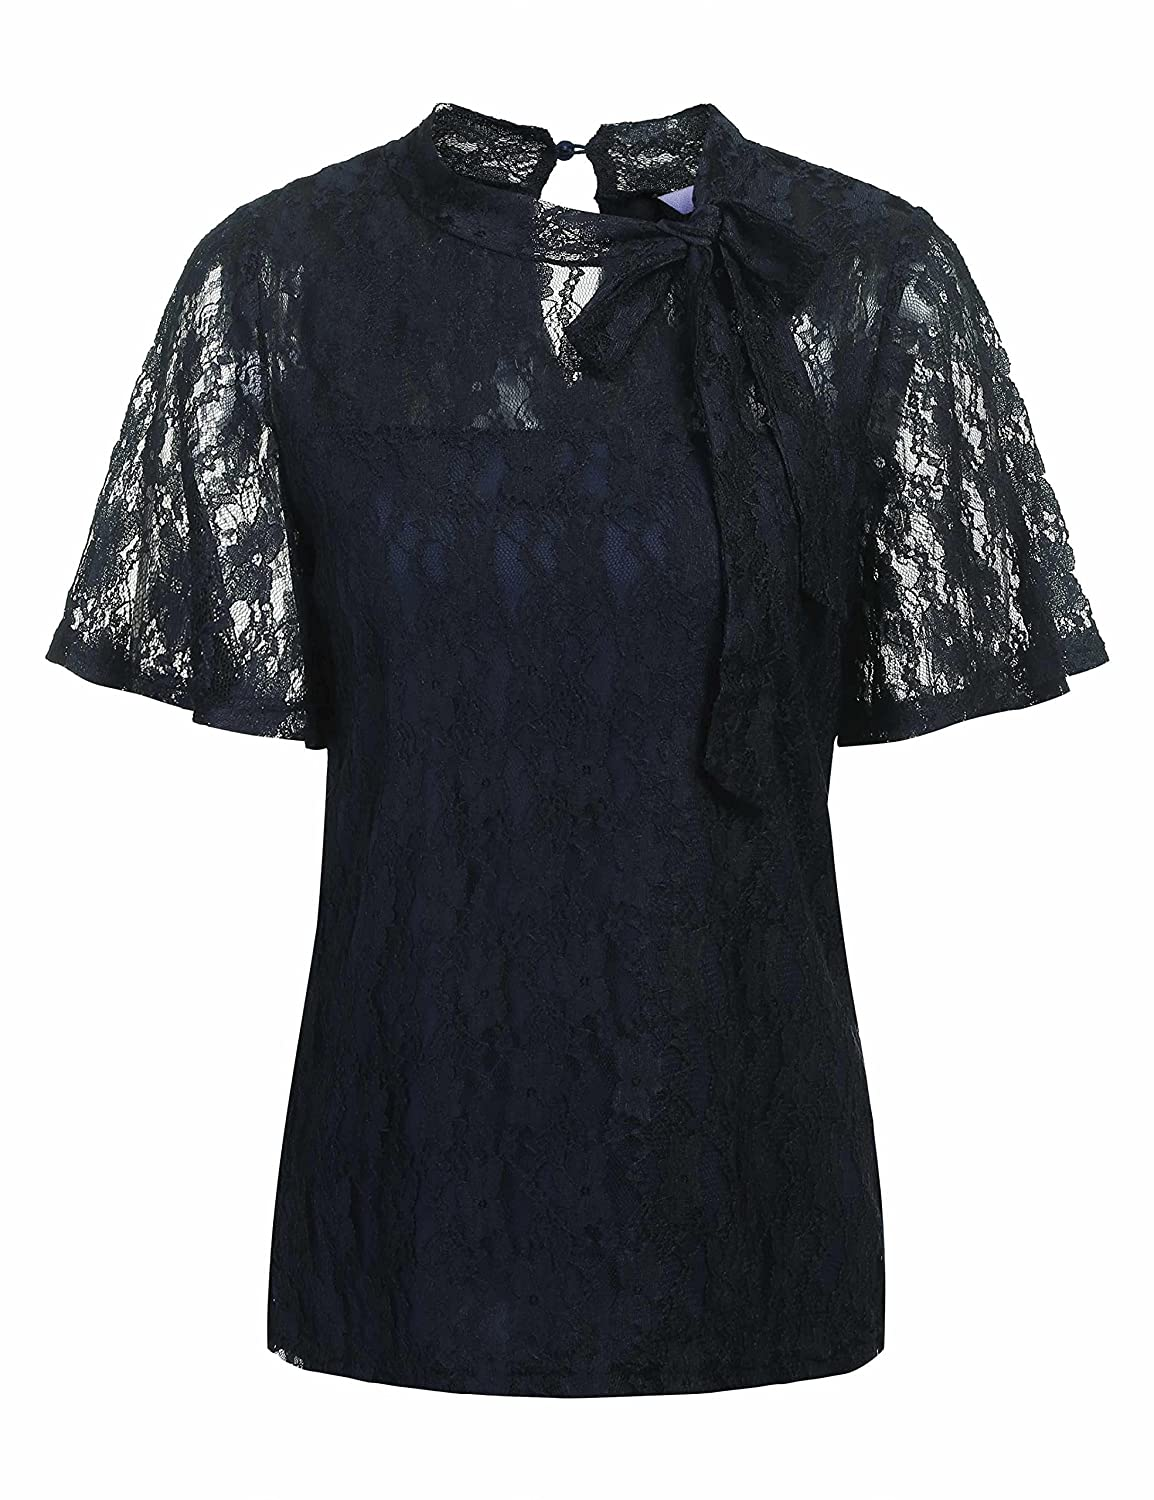 77320351b920 Sexy + Elegant Lace Shirt Design  The see through floral lace patchwork +  elegant bow knot necktie can provide you a special dual experience